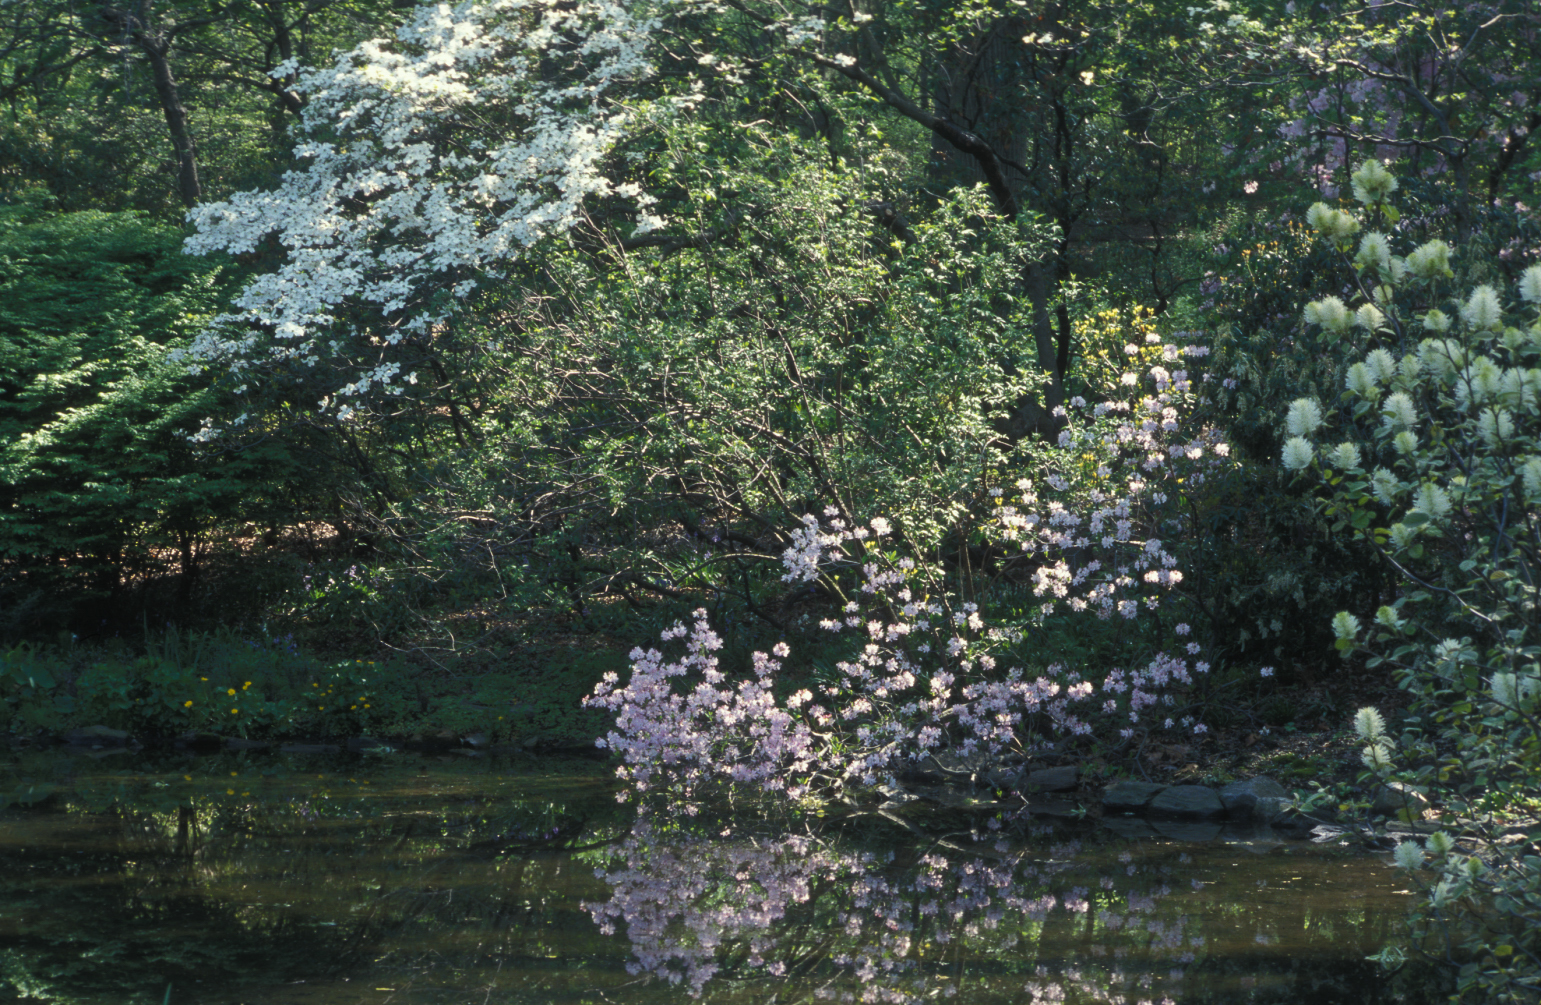 Pond edge in early spring at NYBG with Cornus, Rhododendron schlippenbachii and Fothergilla major.